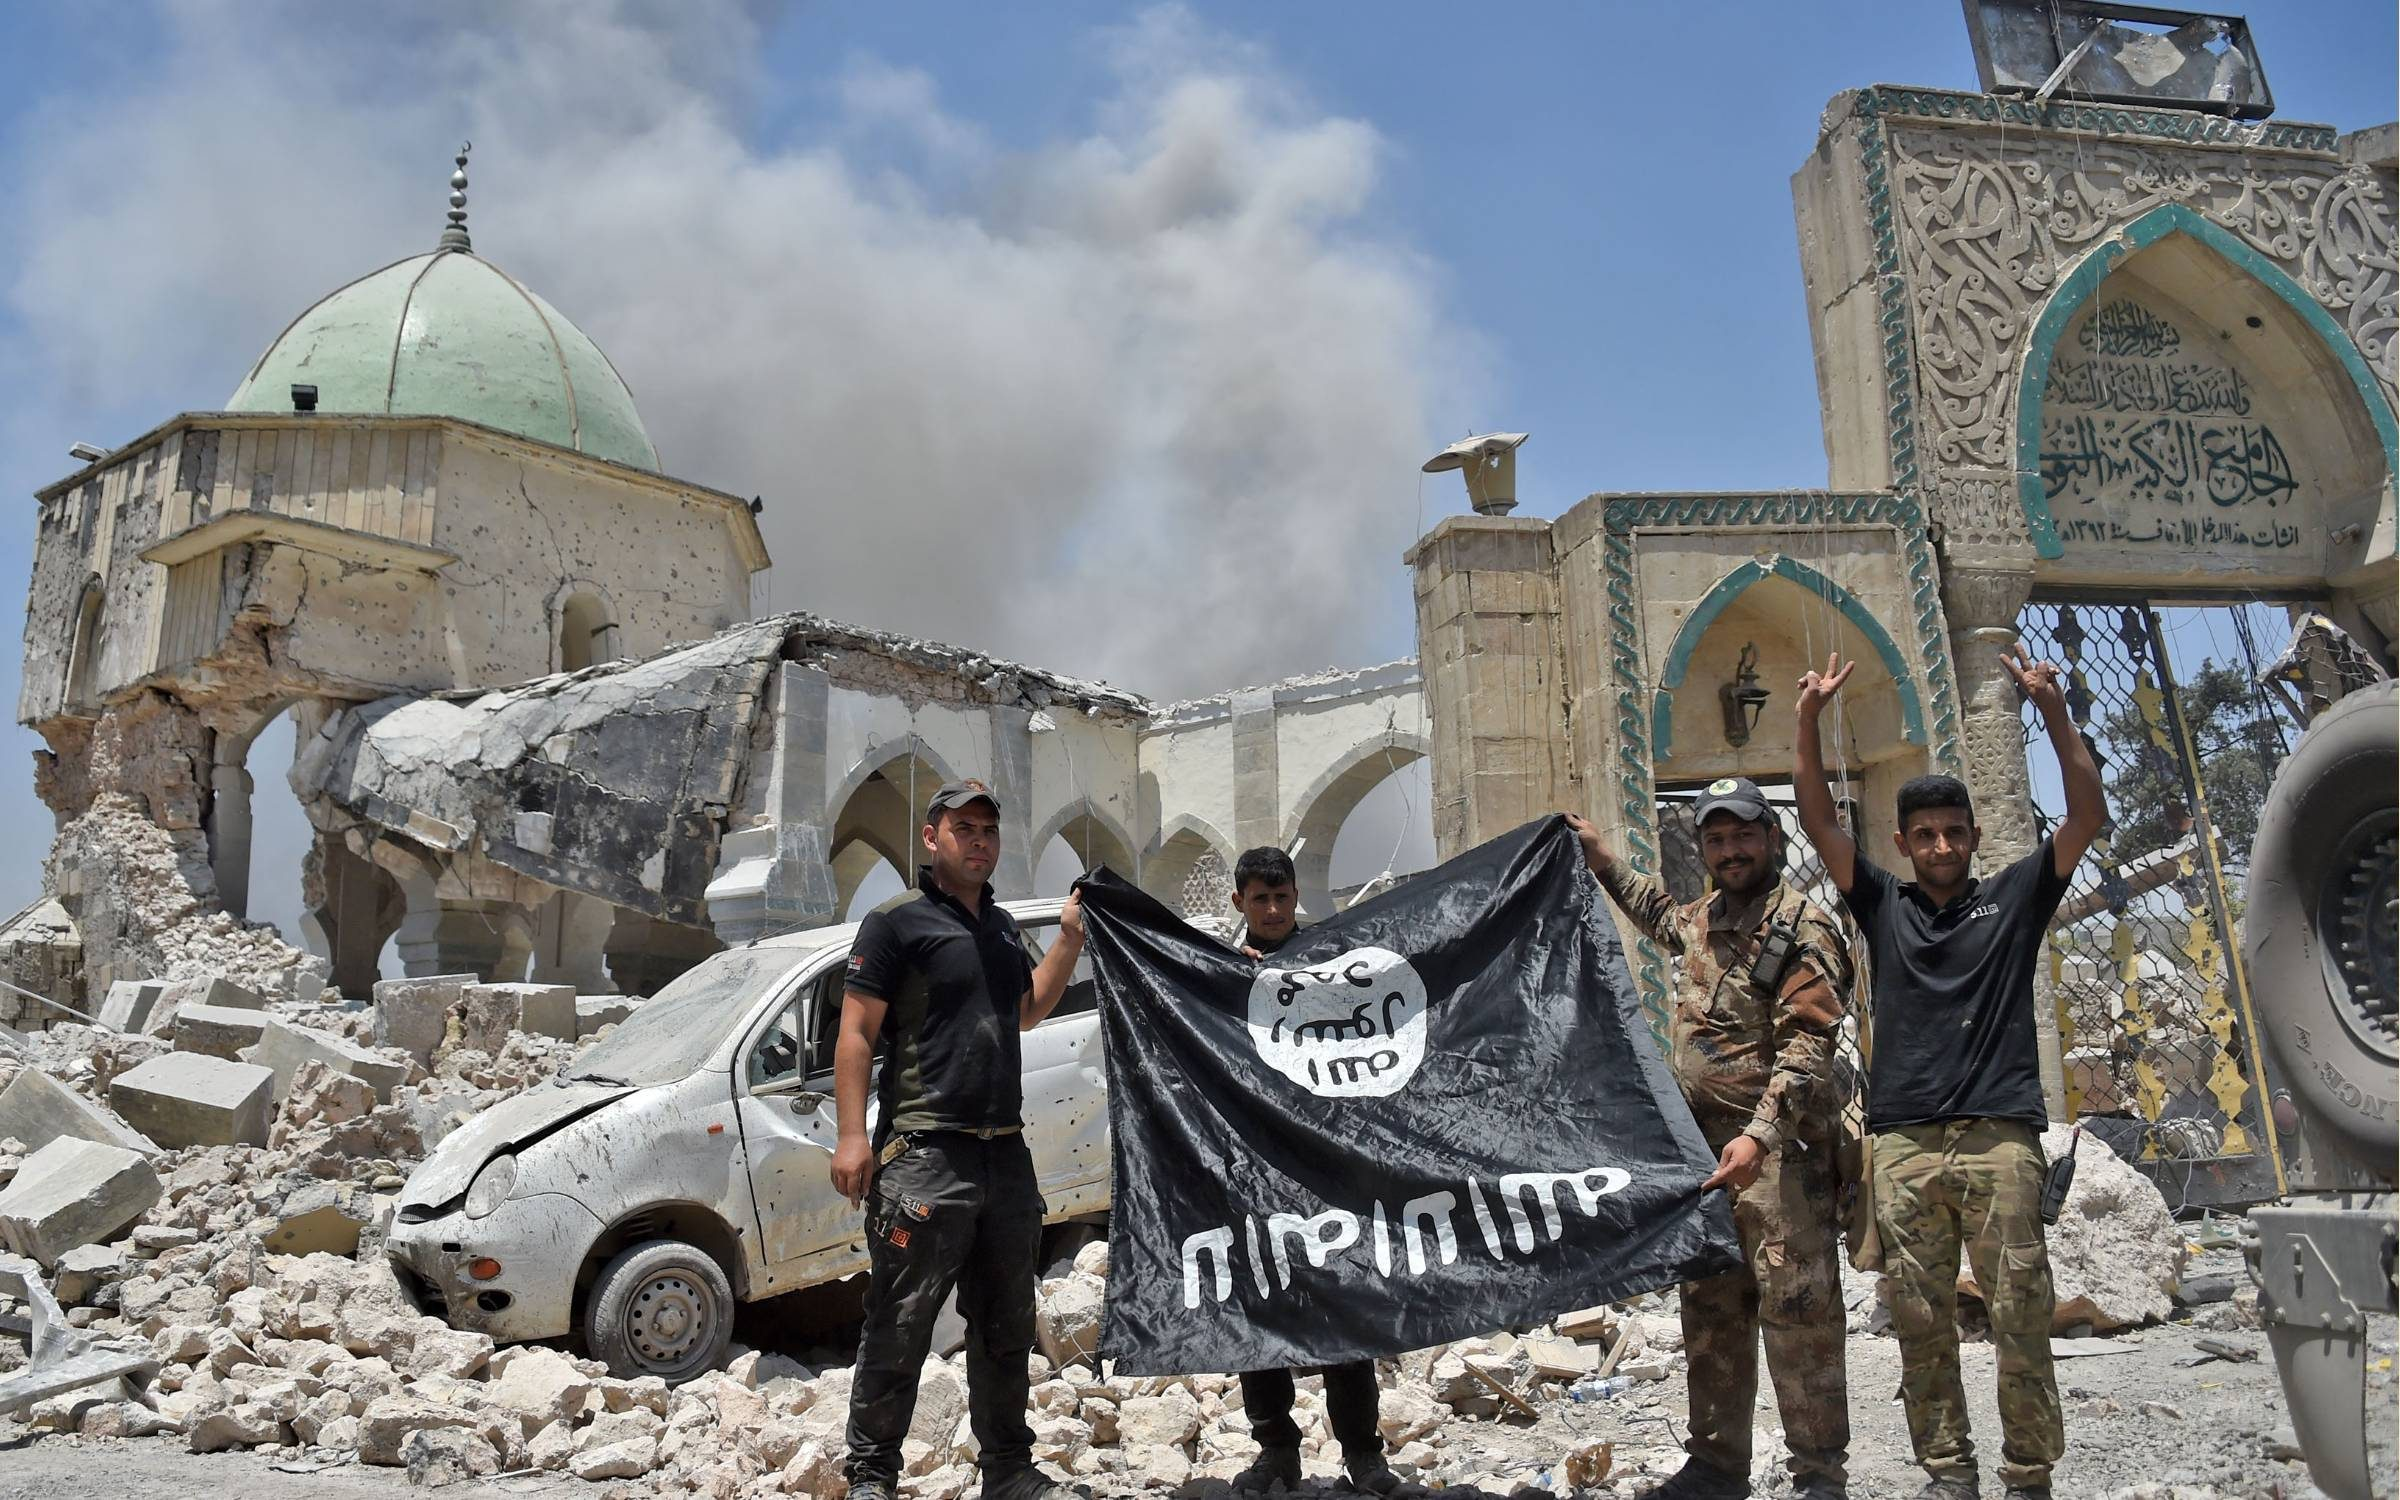 TOPSHOT - A member of the Iraqi Counter-Terrorism Service (CTS) raises the victory gesture as others hold upside-down the black flag of the Islamic State (IS) group, outside the destroyed Al-Nuri Mosque in the Old City of Mosul, after the area was retaken from IS, on June 30, 2017. Explosions on June 21 evening levelled the mosque, where Abu Bakr al-Baghdadi gave his first sermon as leader of the Islamic State group and its ancient minaret. Iraq will declare victory in the eight-month battle to retake second city Mosul from jihadists in the